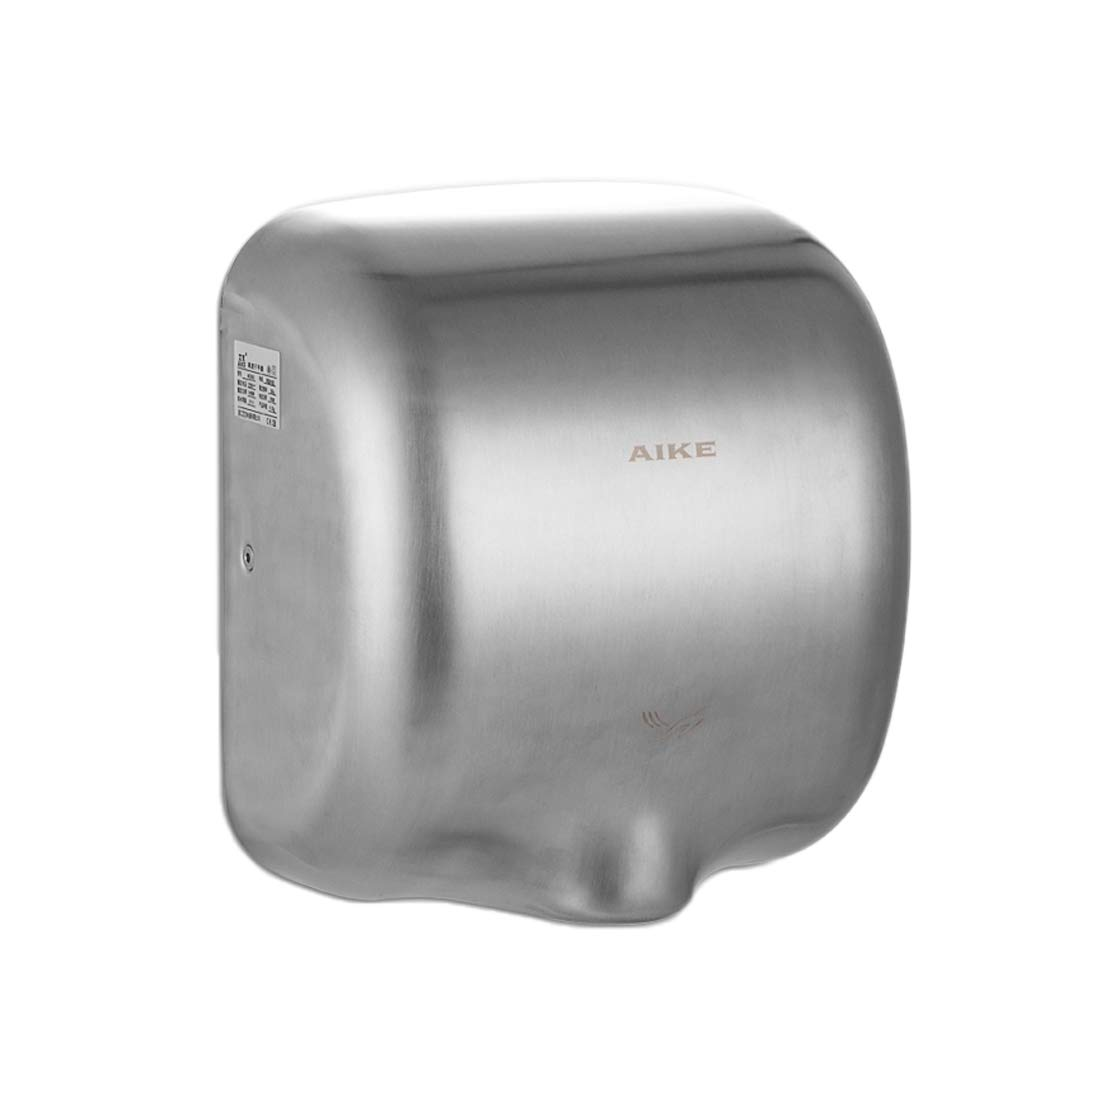 AIKE Automatic Wall Mounted High Velocity Powerful Stainless Electric Hand Dryer Commercial, 110V-120V,Simple Shell,Polished Zhejiang AIKE Appliances Co. Ltd. AK2800